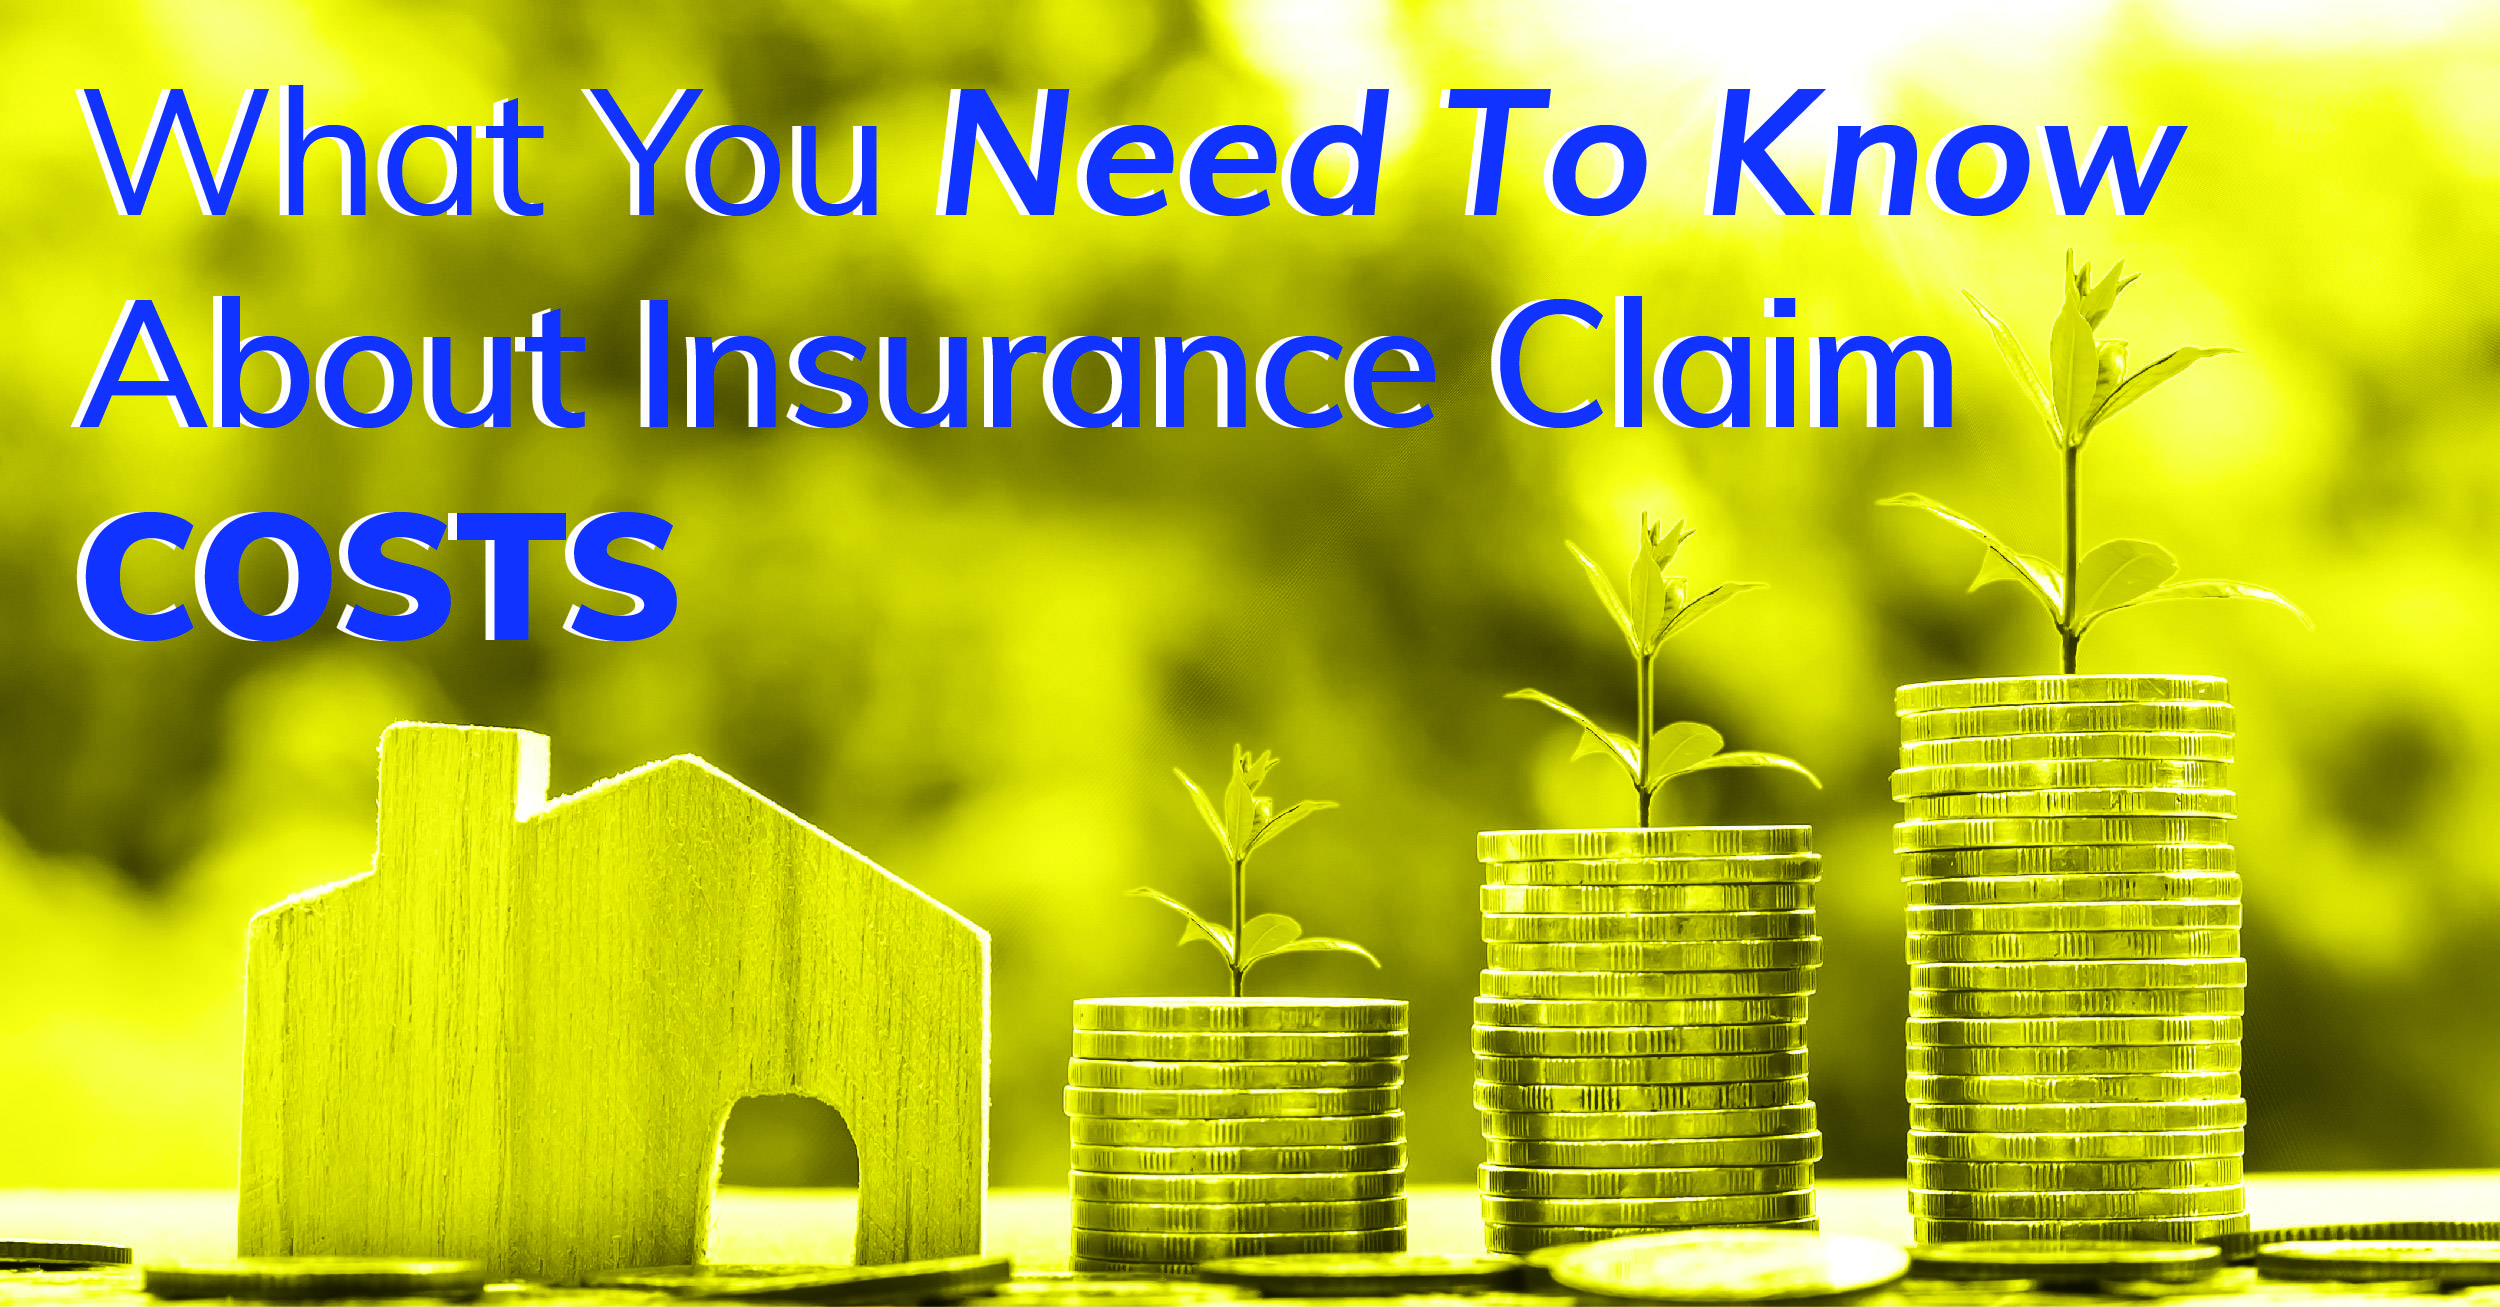 What You Need To Know About Insurance Claim Costs